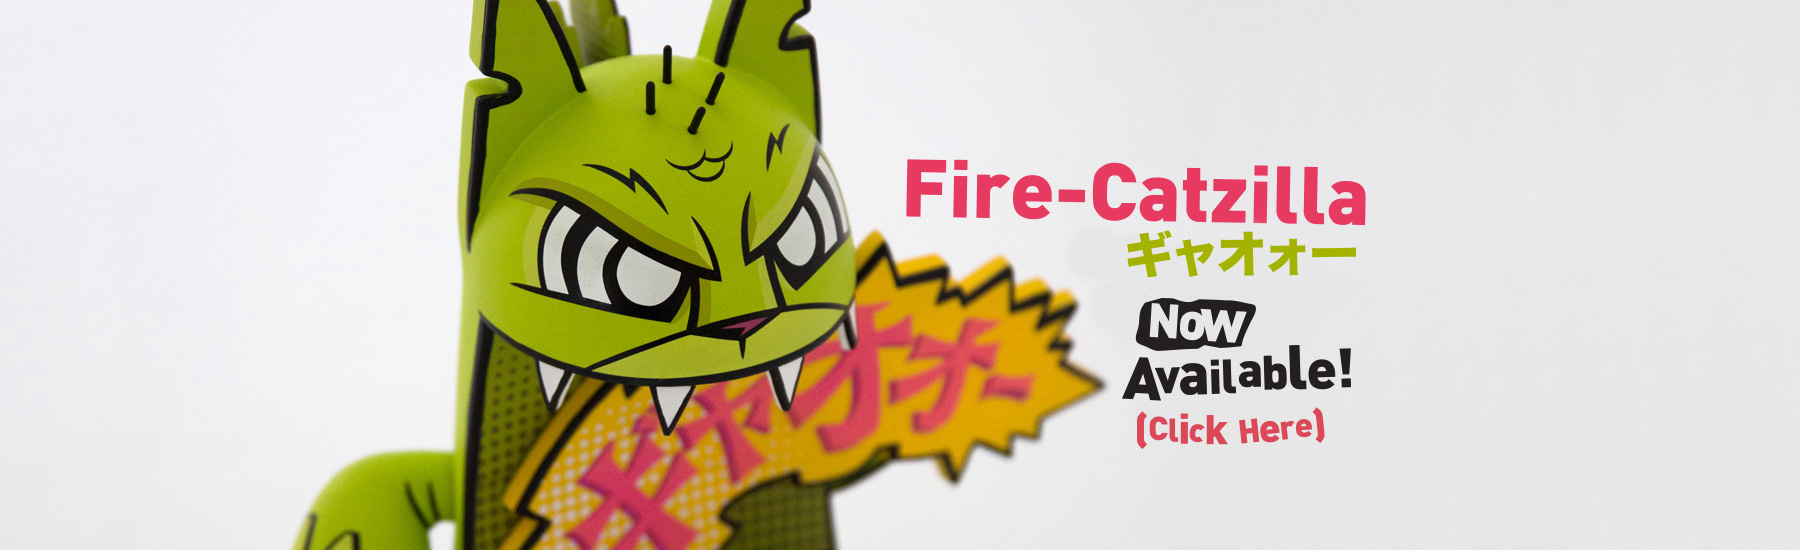 loading Fire-Catzilla now available banner